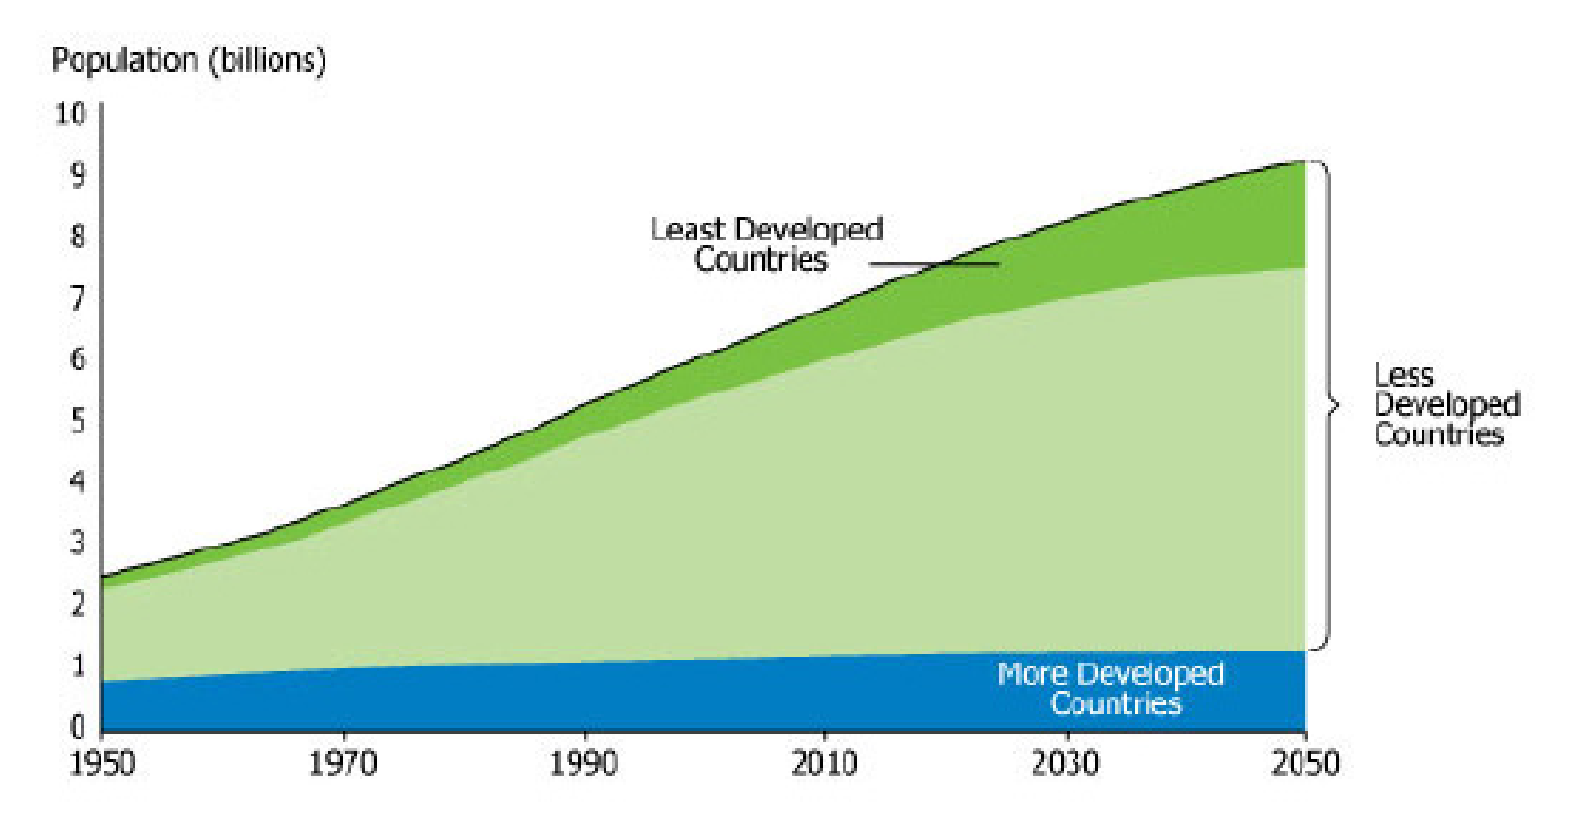 Figure 14: World populations projections 1950 to 2050: Division between countries according to development.